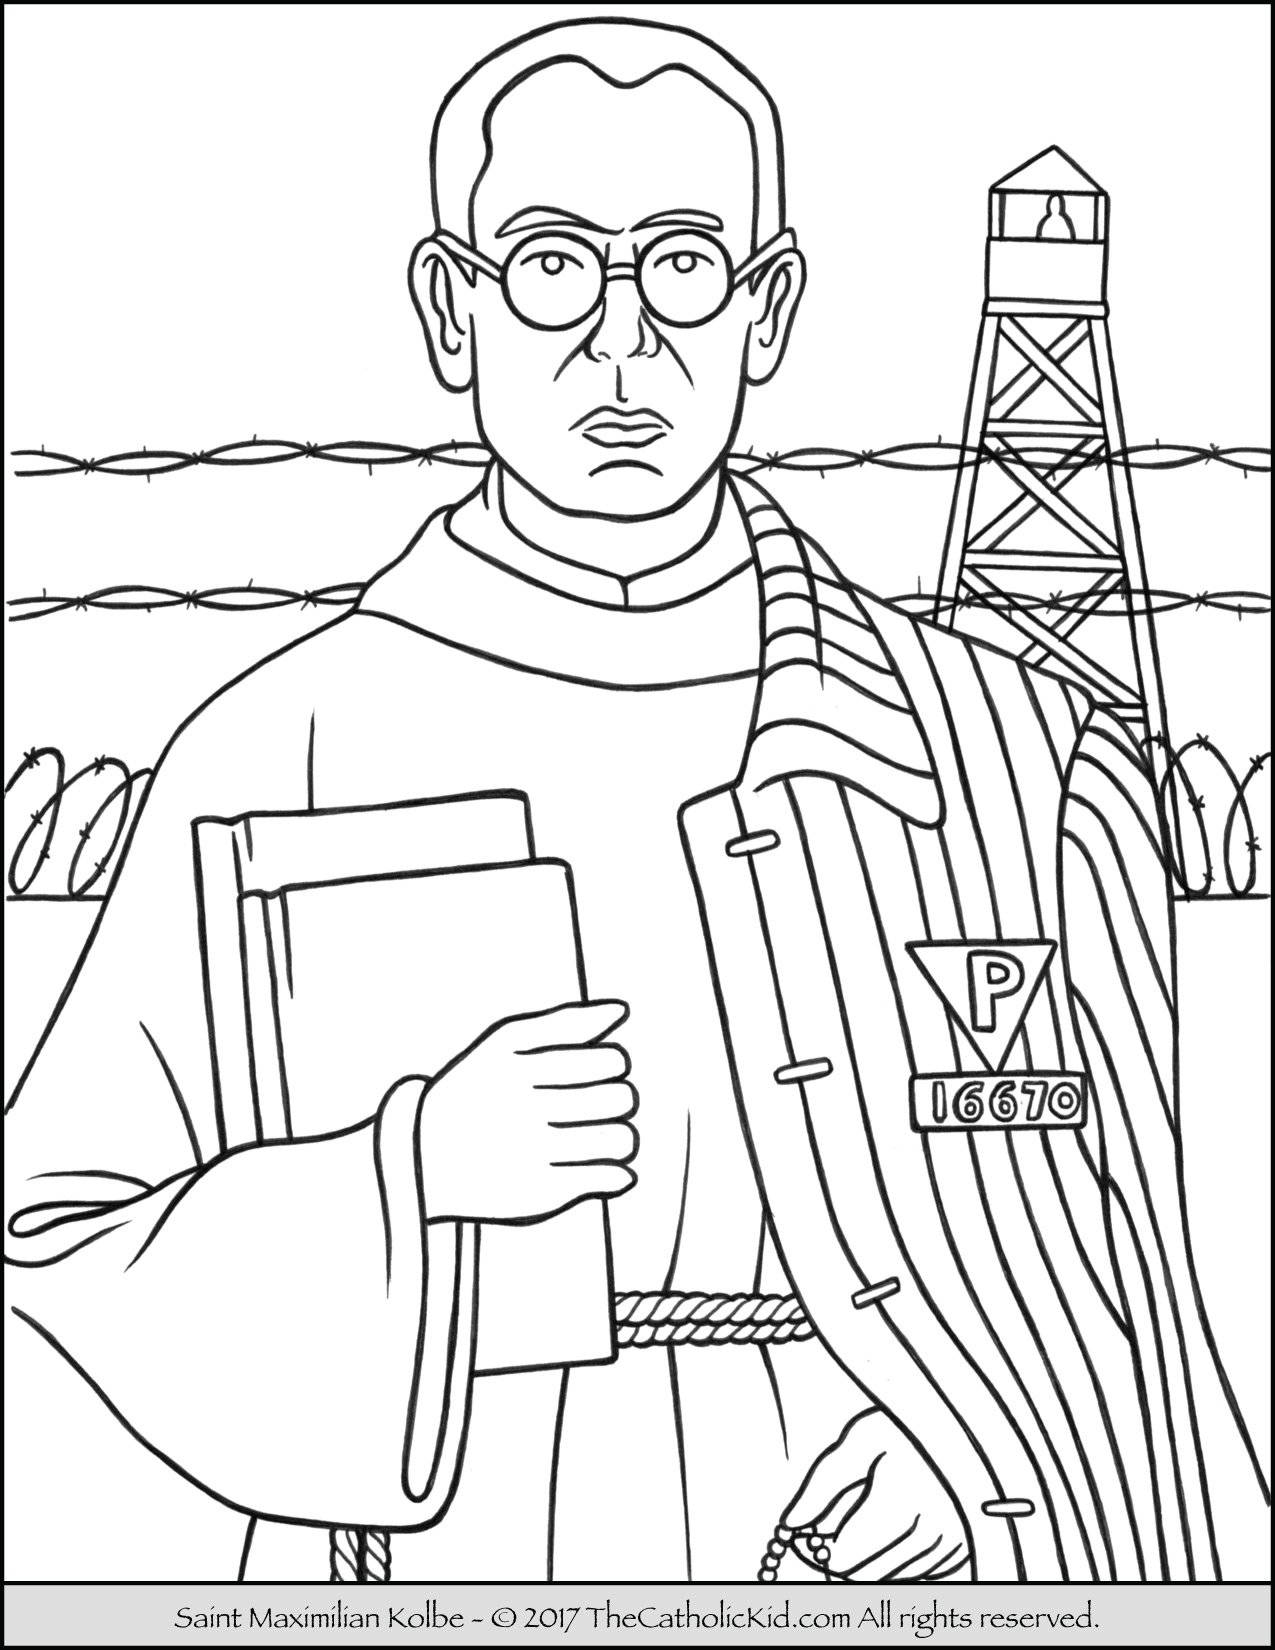 Saint maximilian kolbe coloring page for Catholic coloring book pages